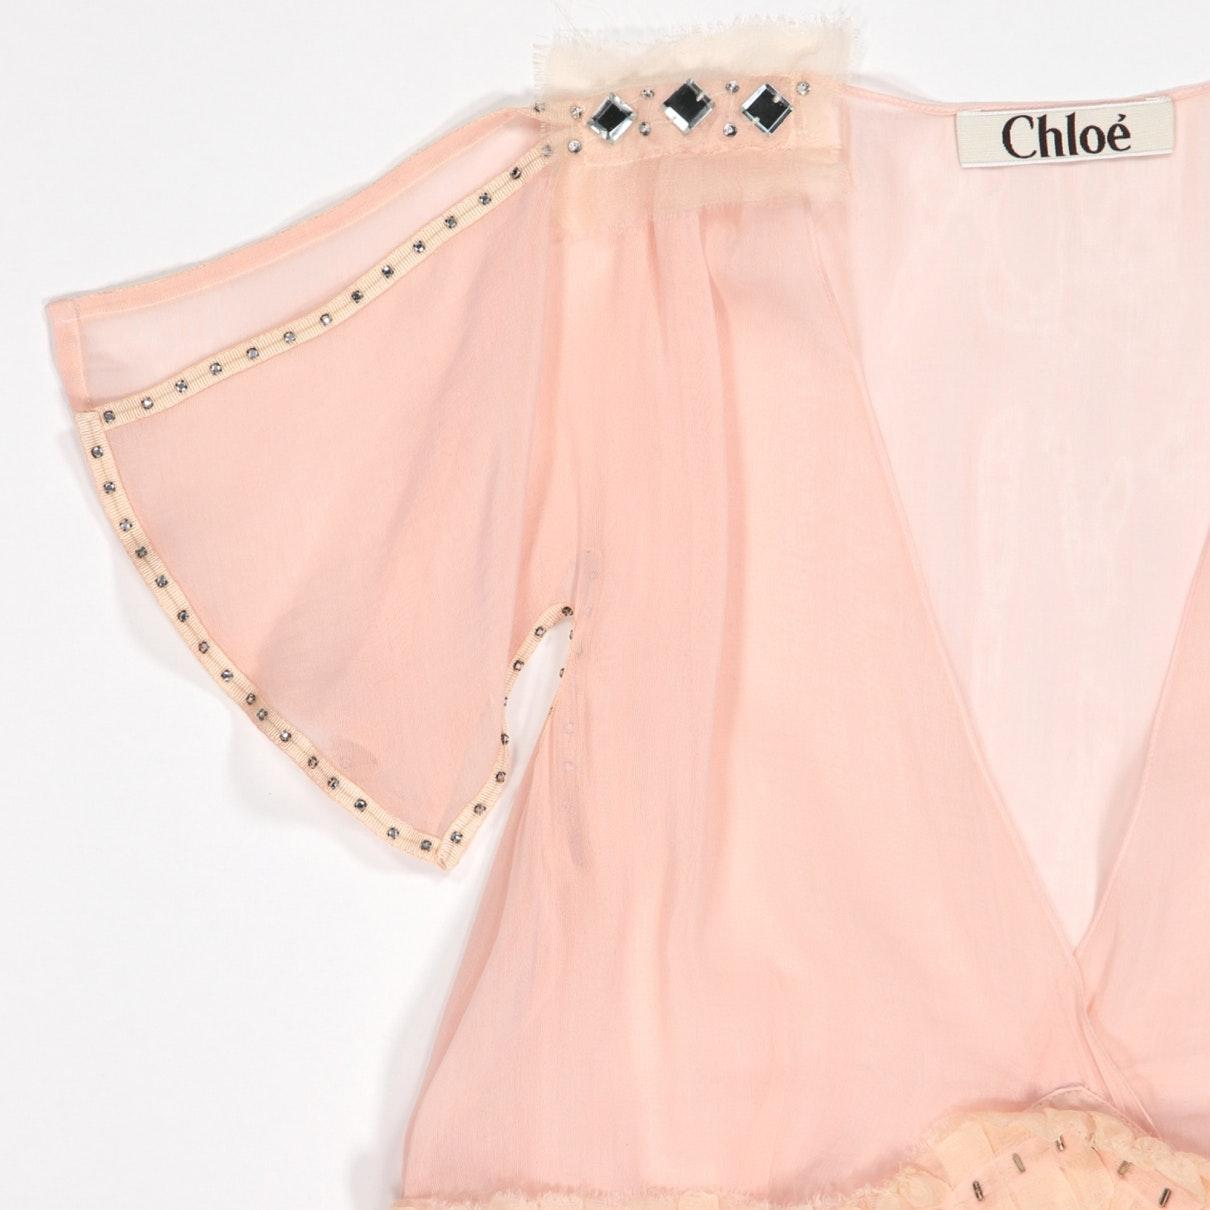 Chloé Silk Blouse in Pink